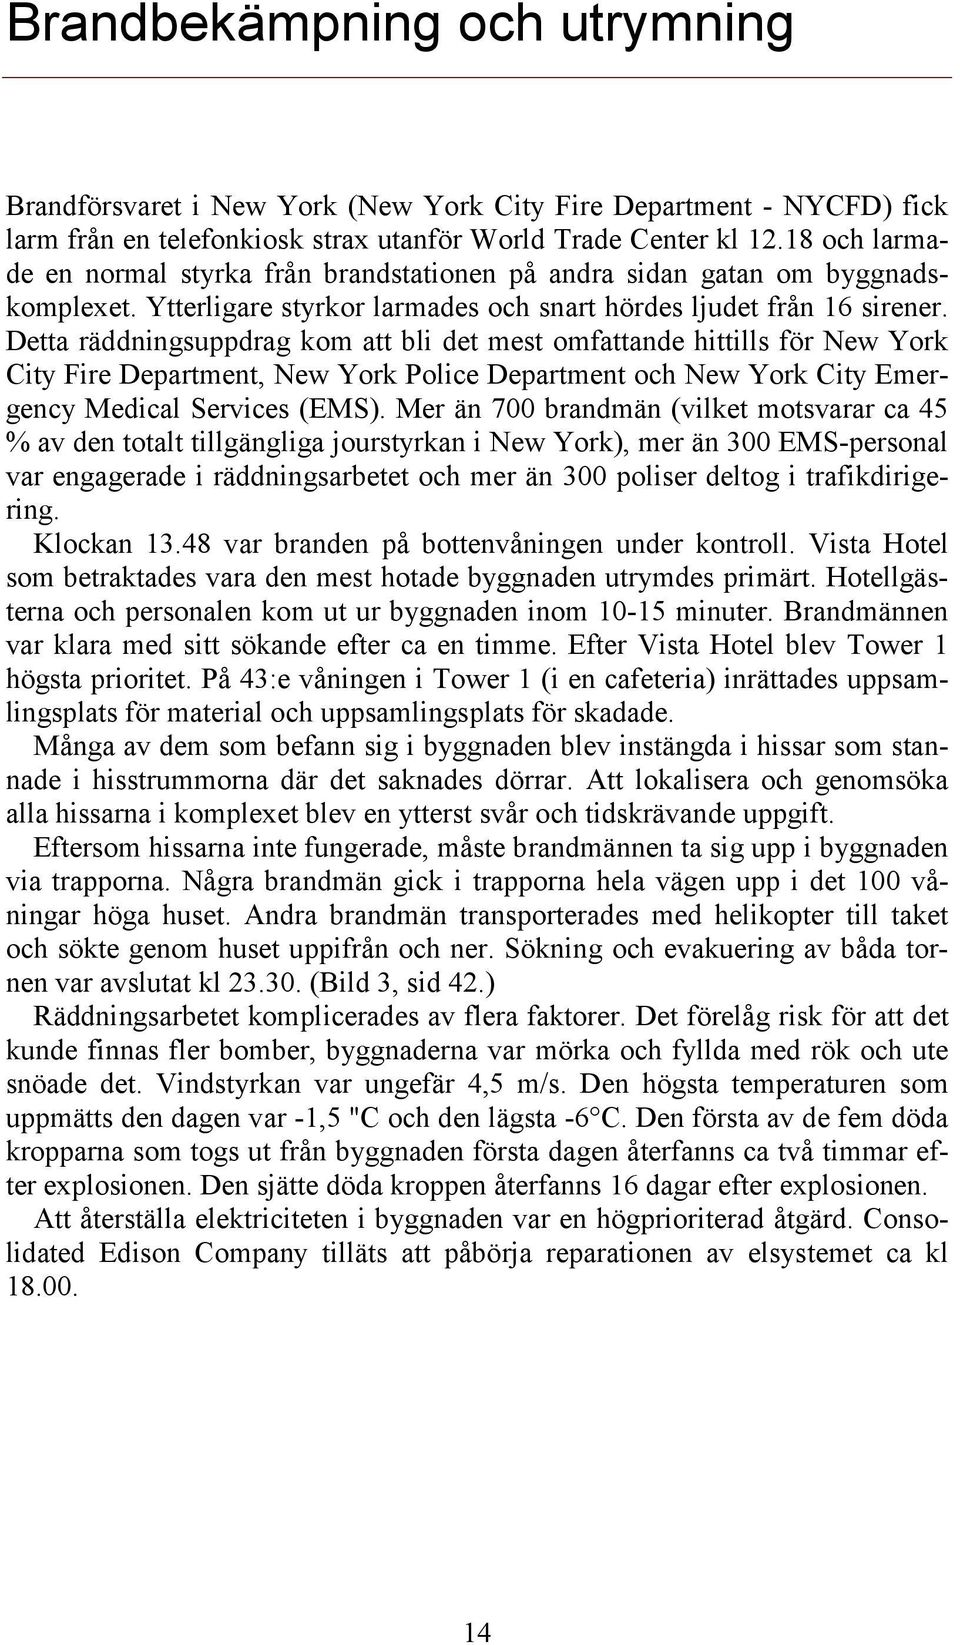 Detta räddningsuppdrag kom att bli det mest omfattande hittills för New York City Fire Department, New York Police Department och New York City Emergency Medical Services (EMS).